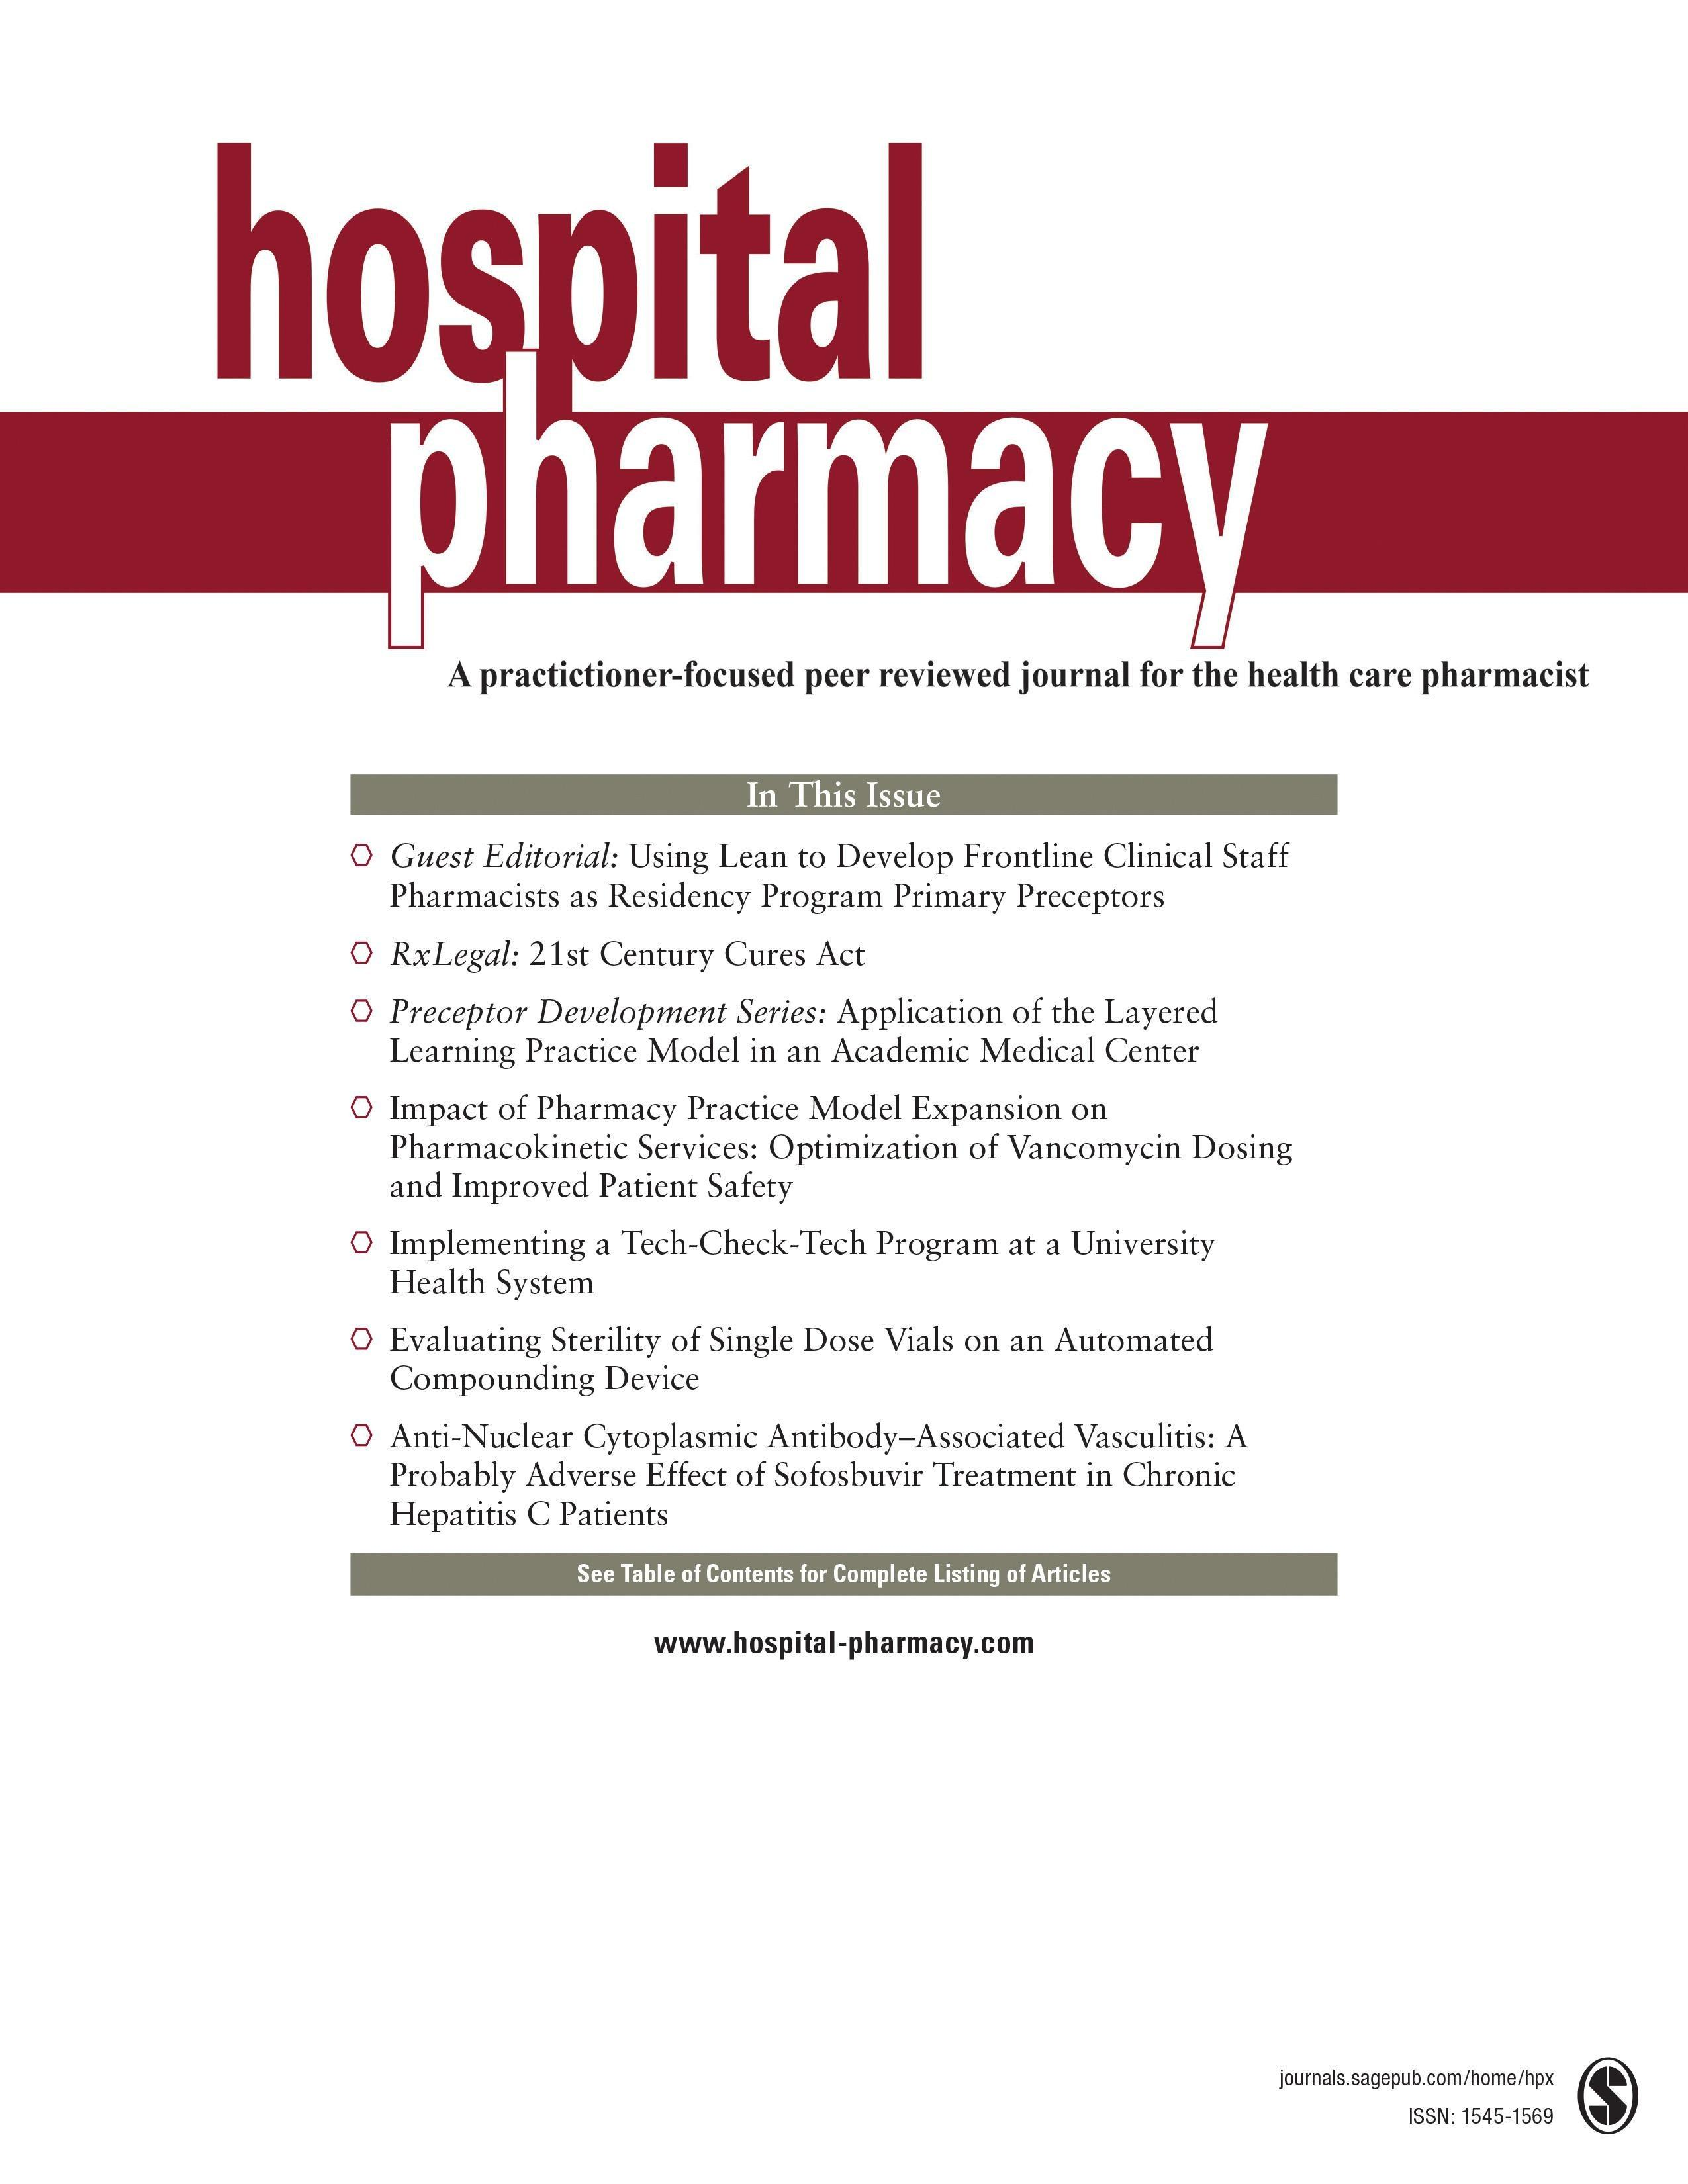 Questions And Answers From The F.i.x.; Insulin Aspart Vs Insulin Lispro; Phenothiazines And Contrast Media; Meperidine Removal From Formulary; Furosemide And Albumin As An Admixture